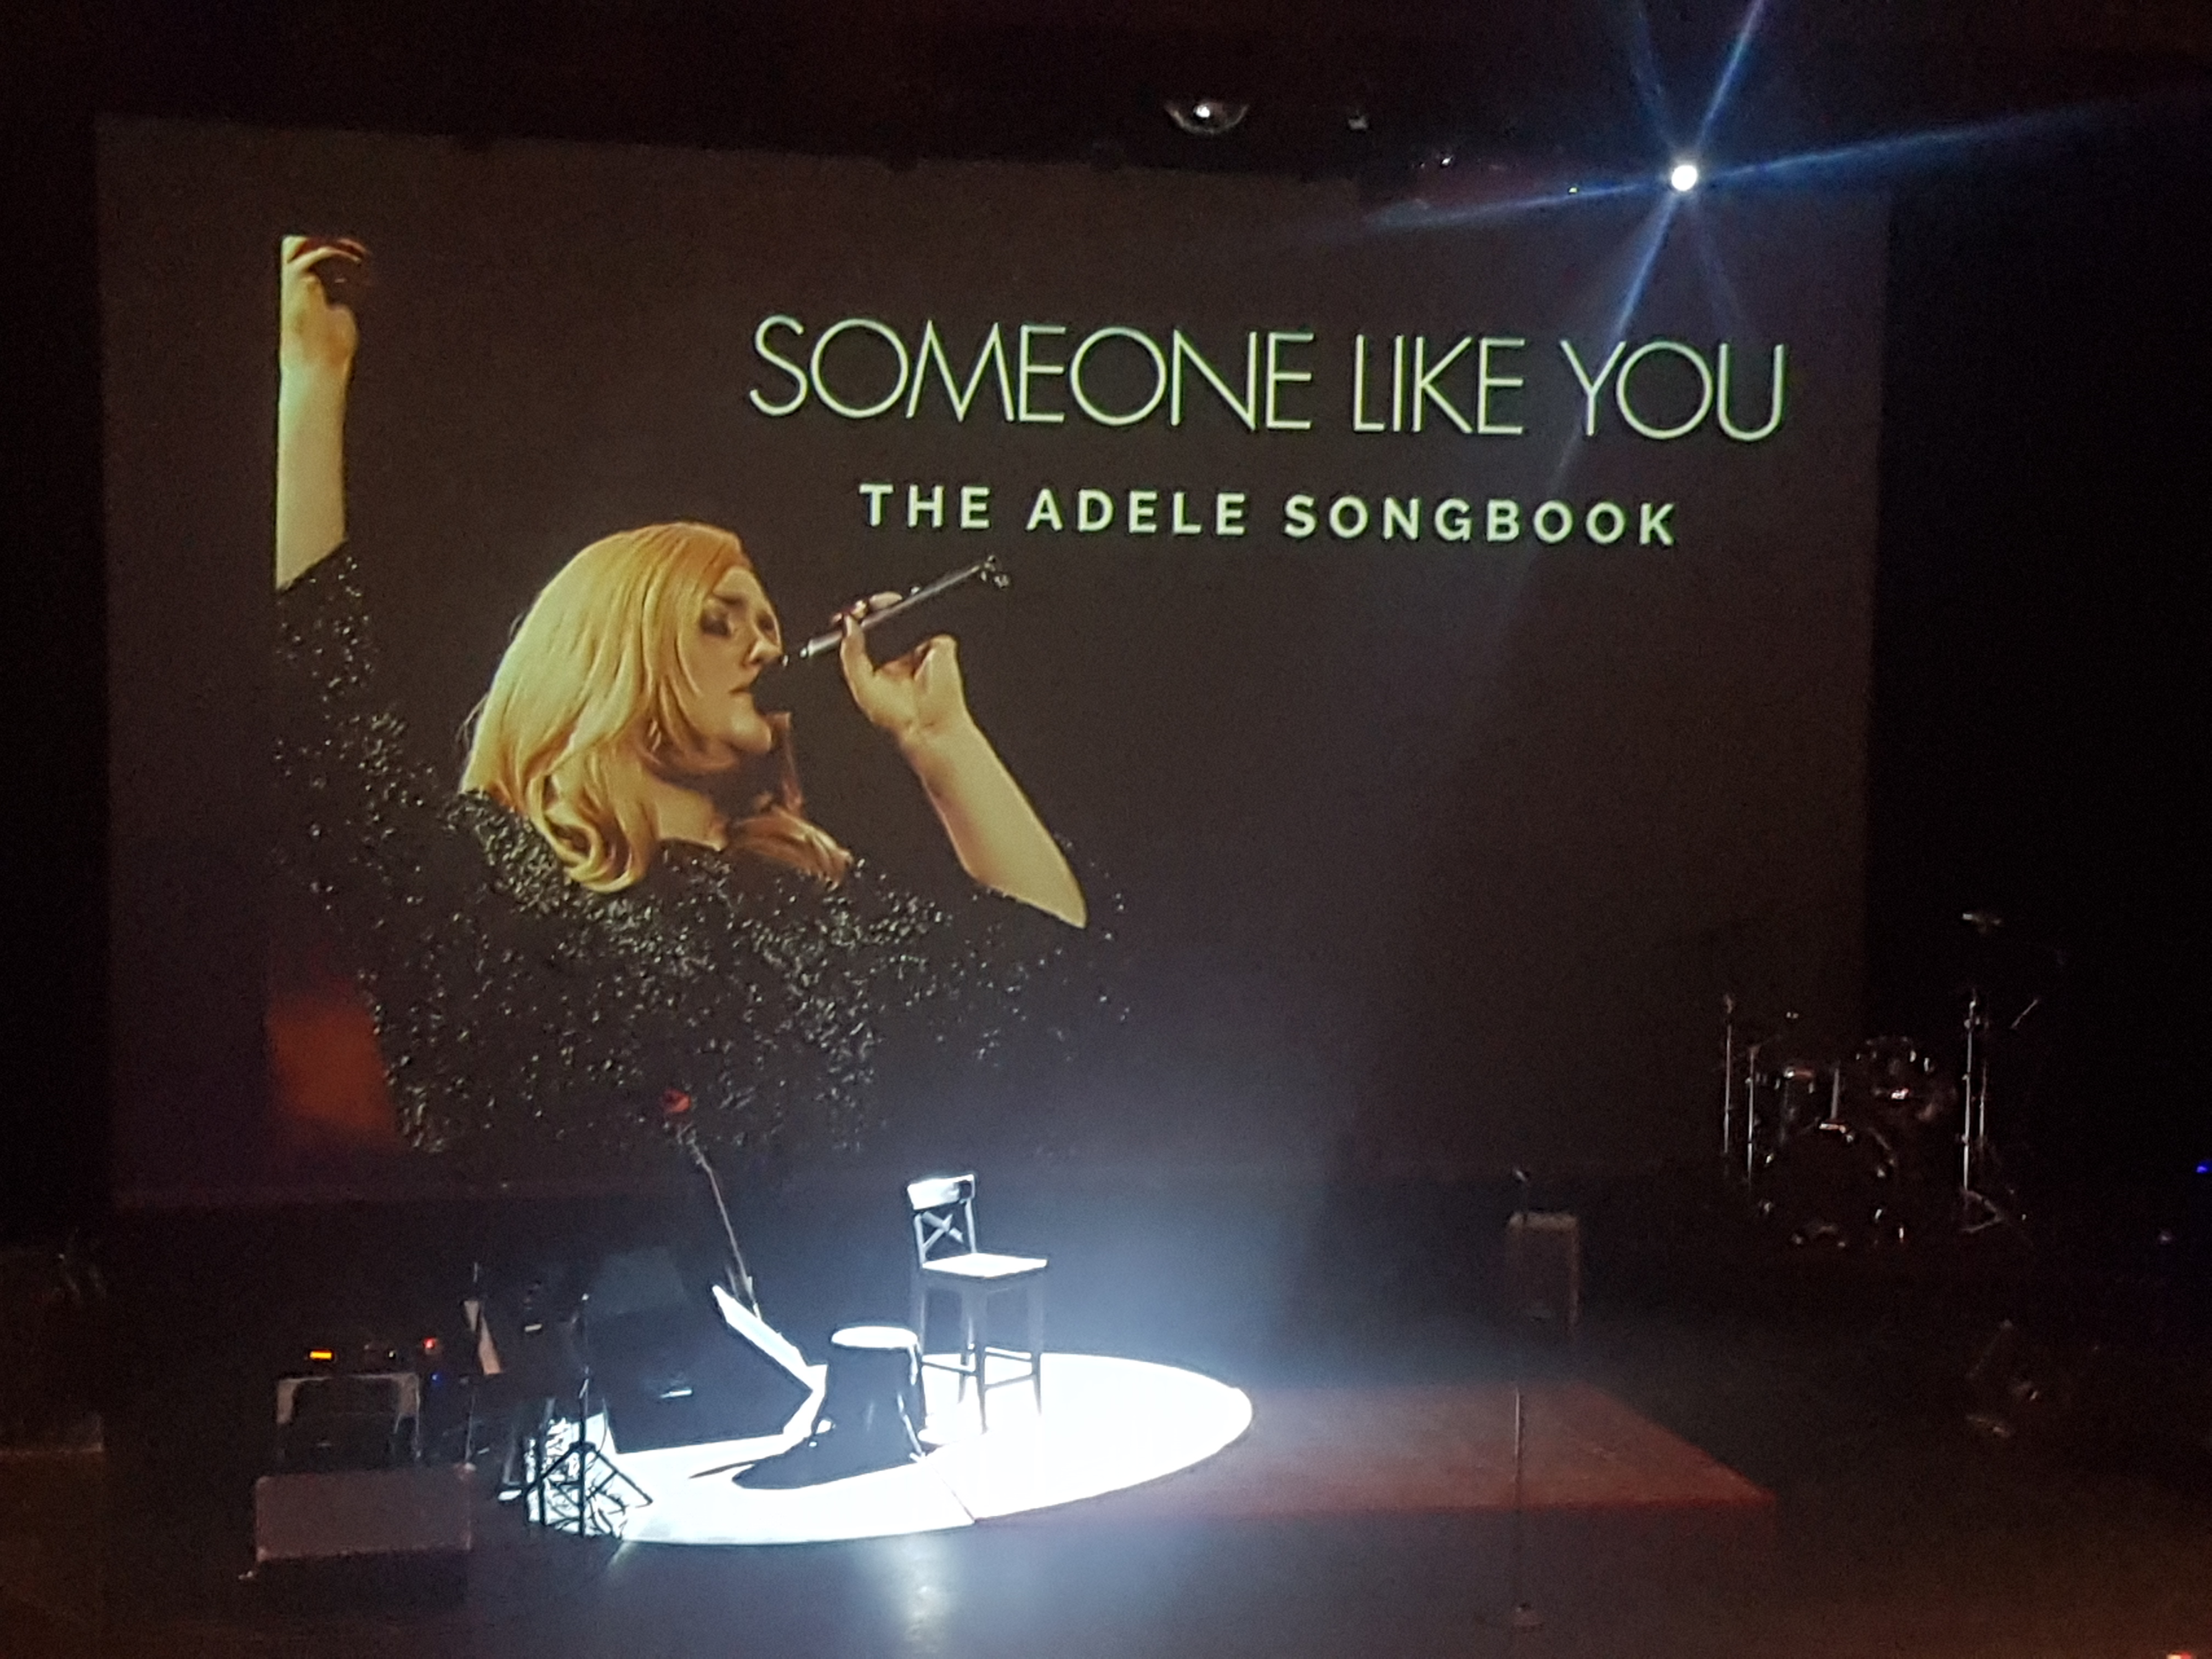 The Adele songbook - 02.02.18